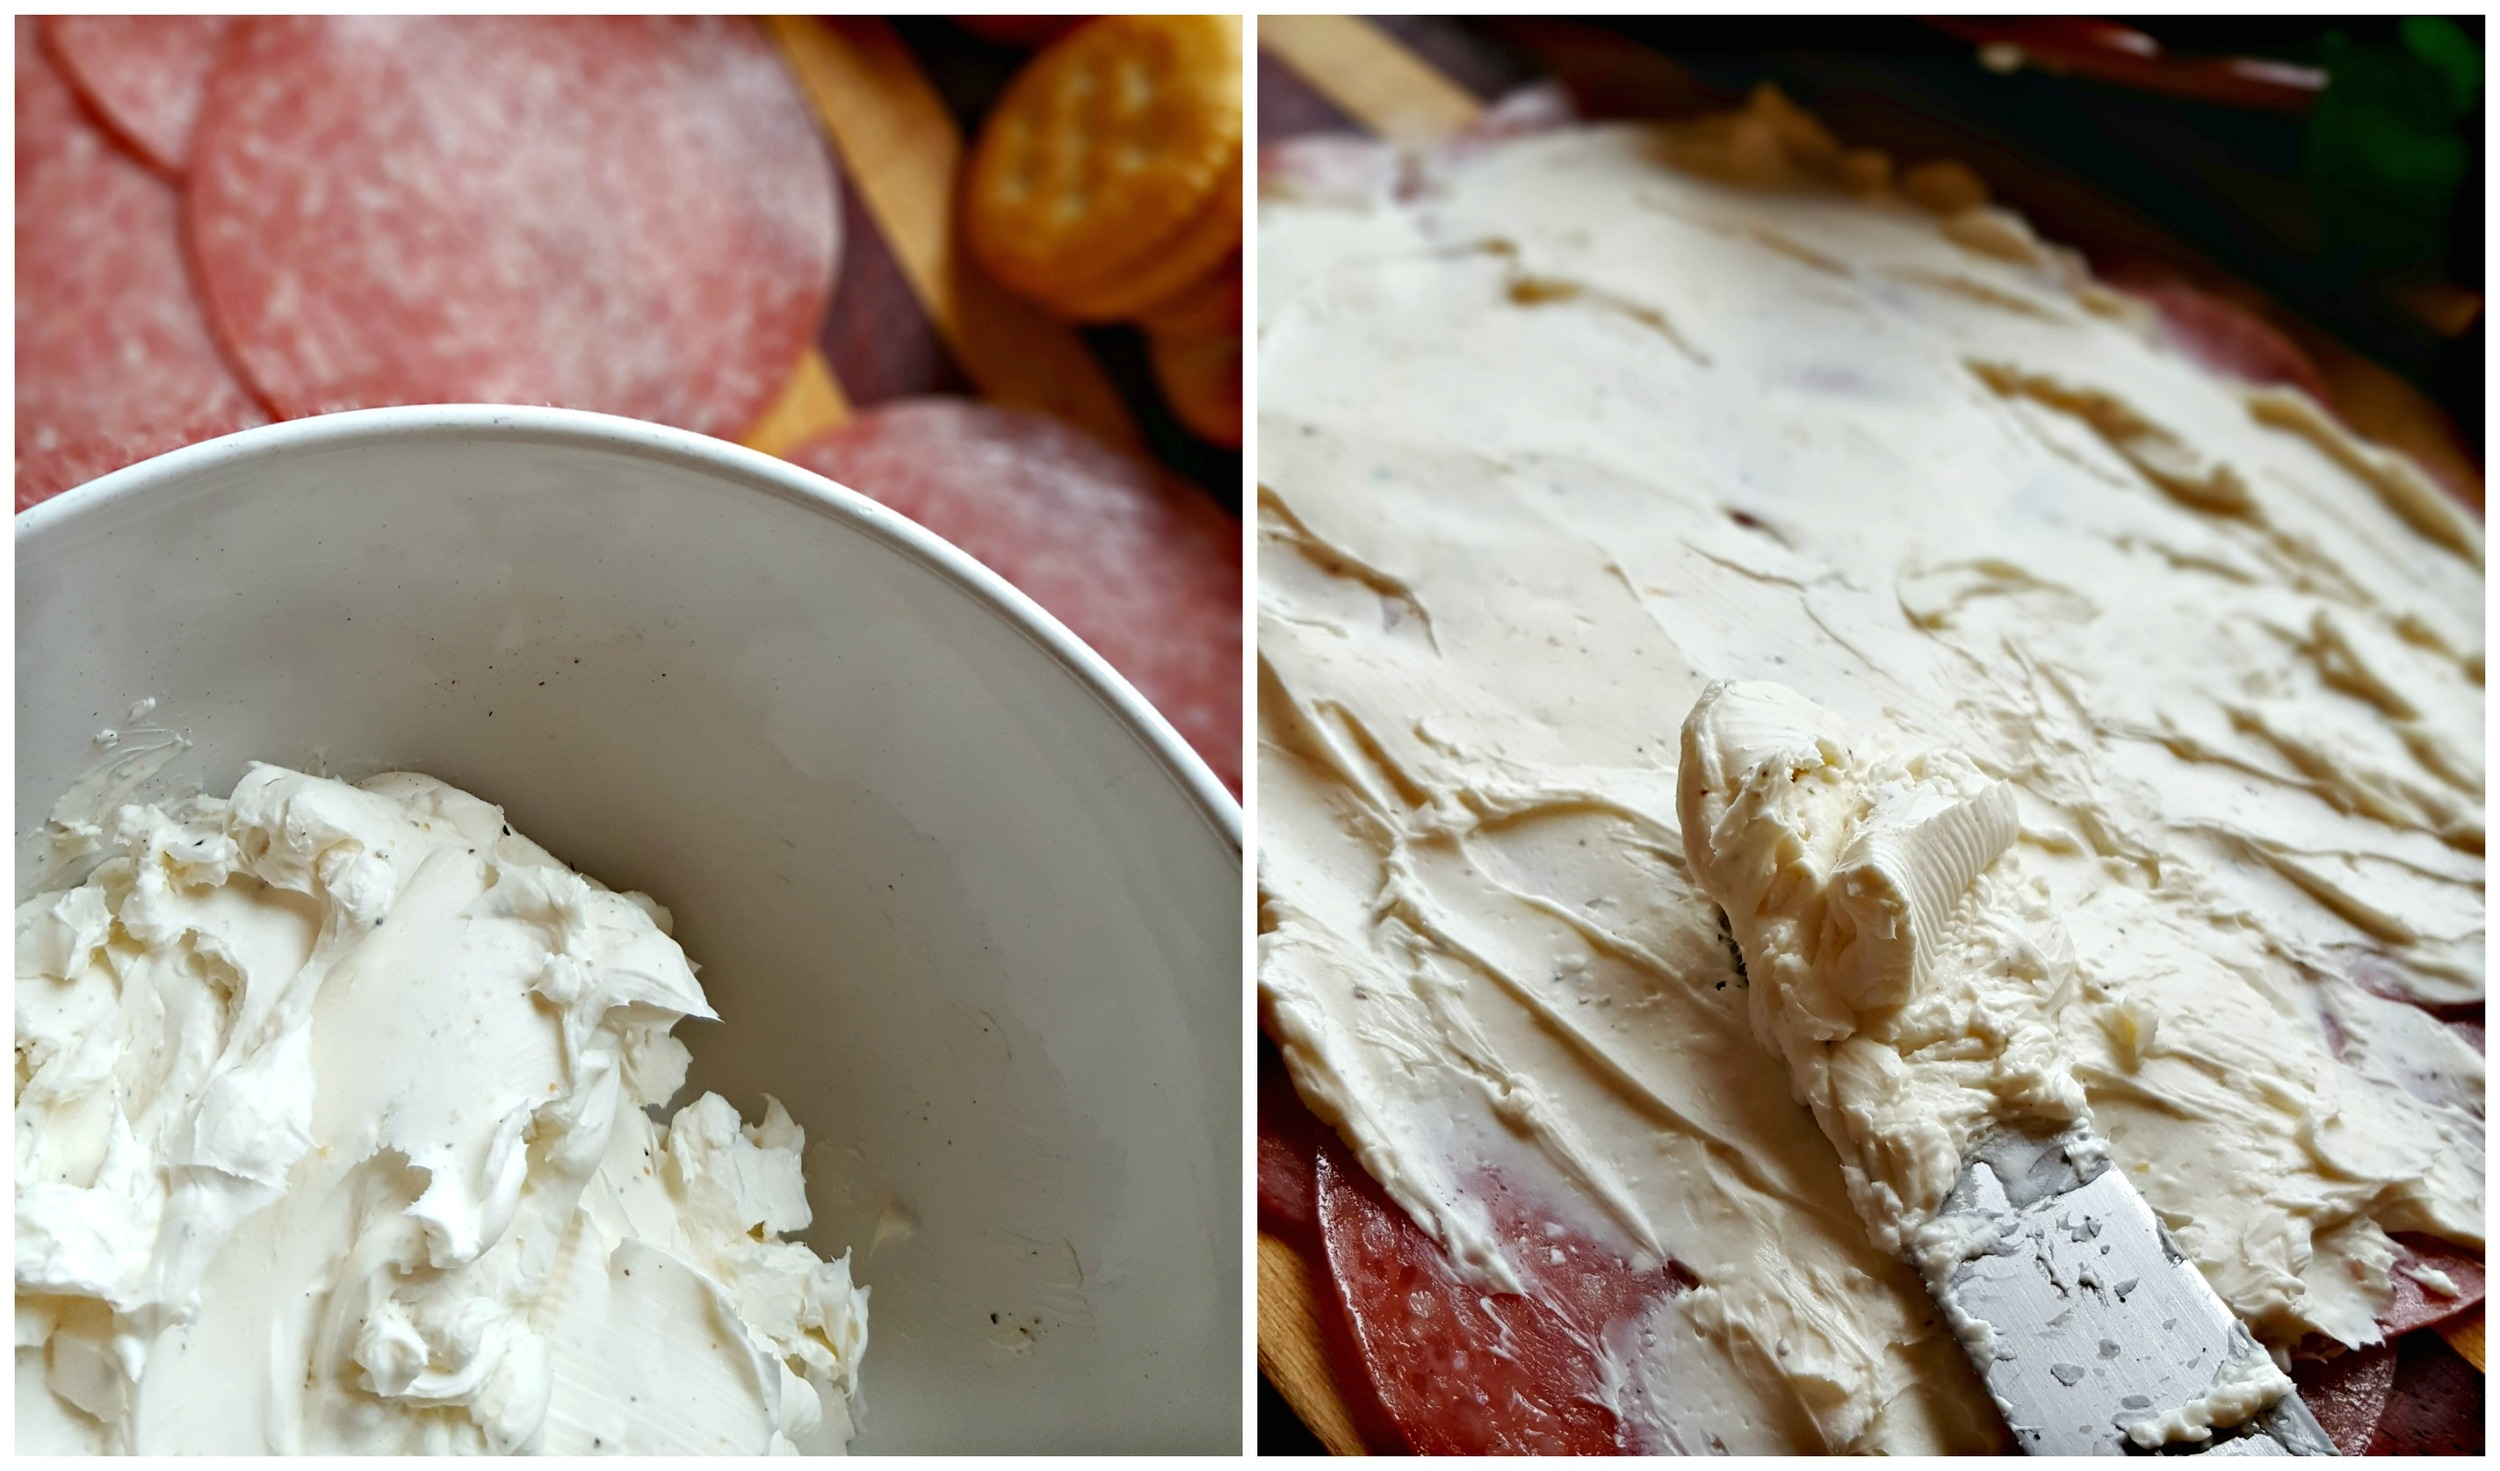 Step 2: Spread Cream Cheese over the Salami